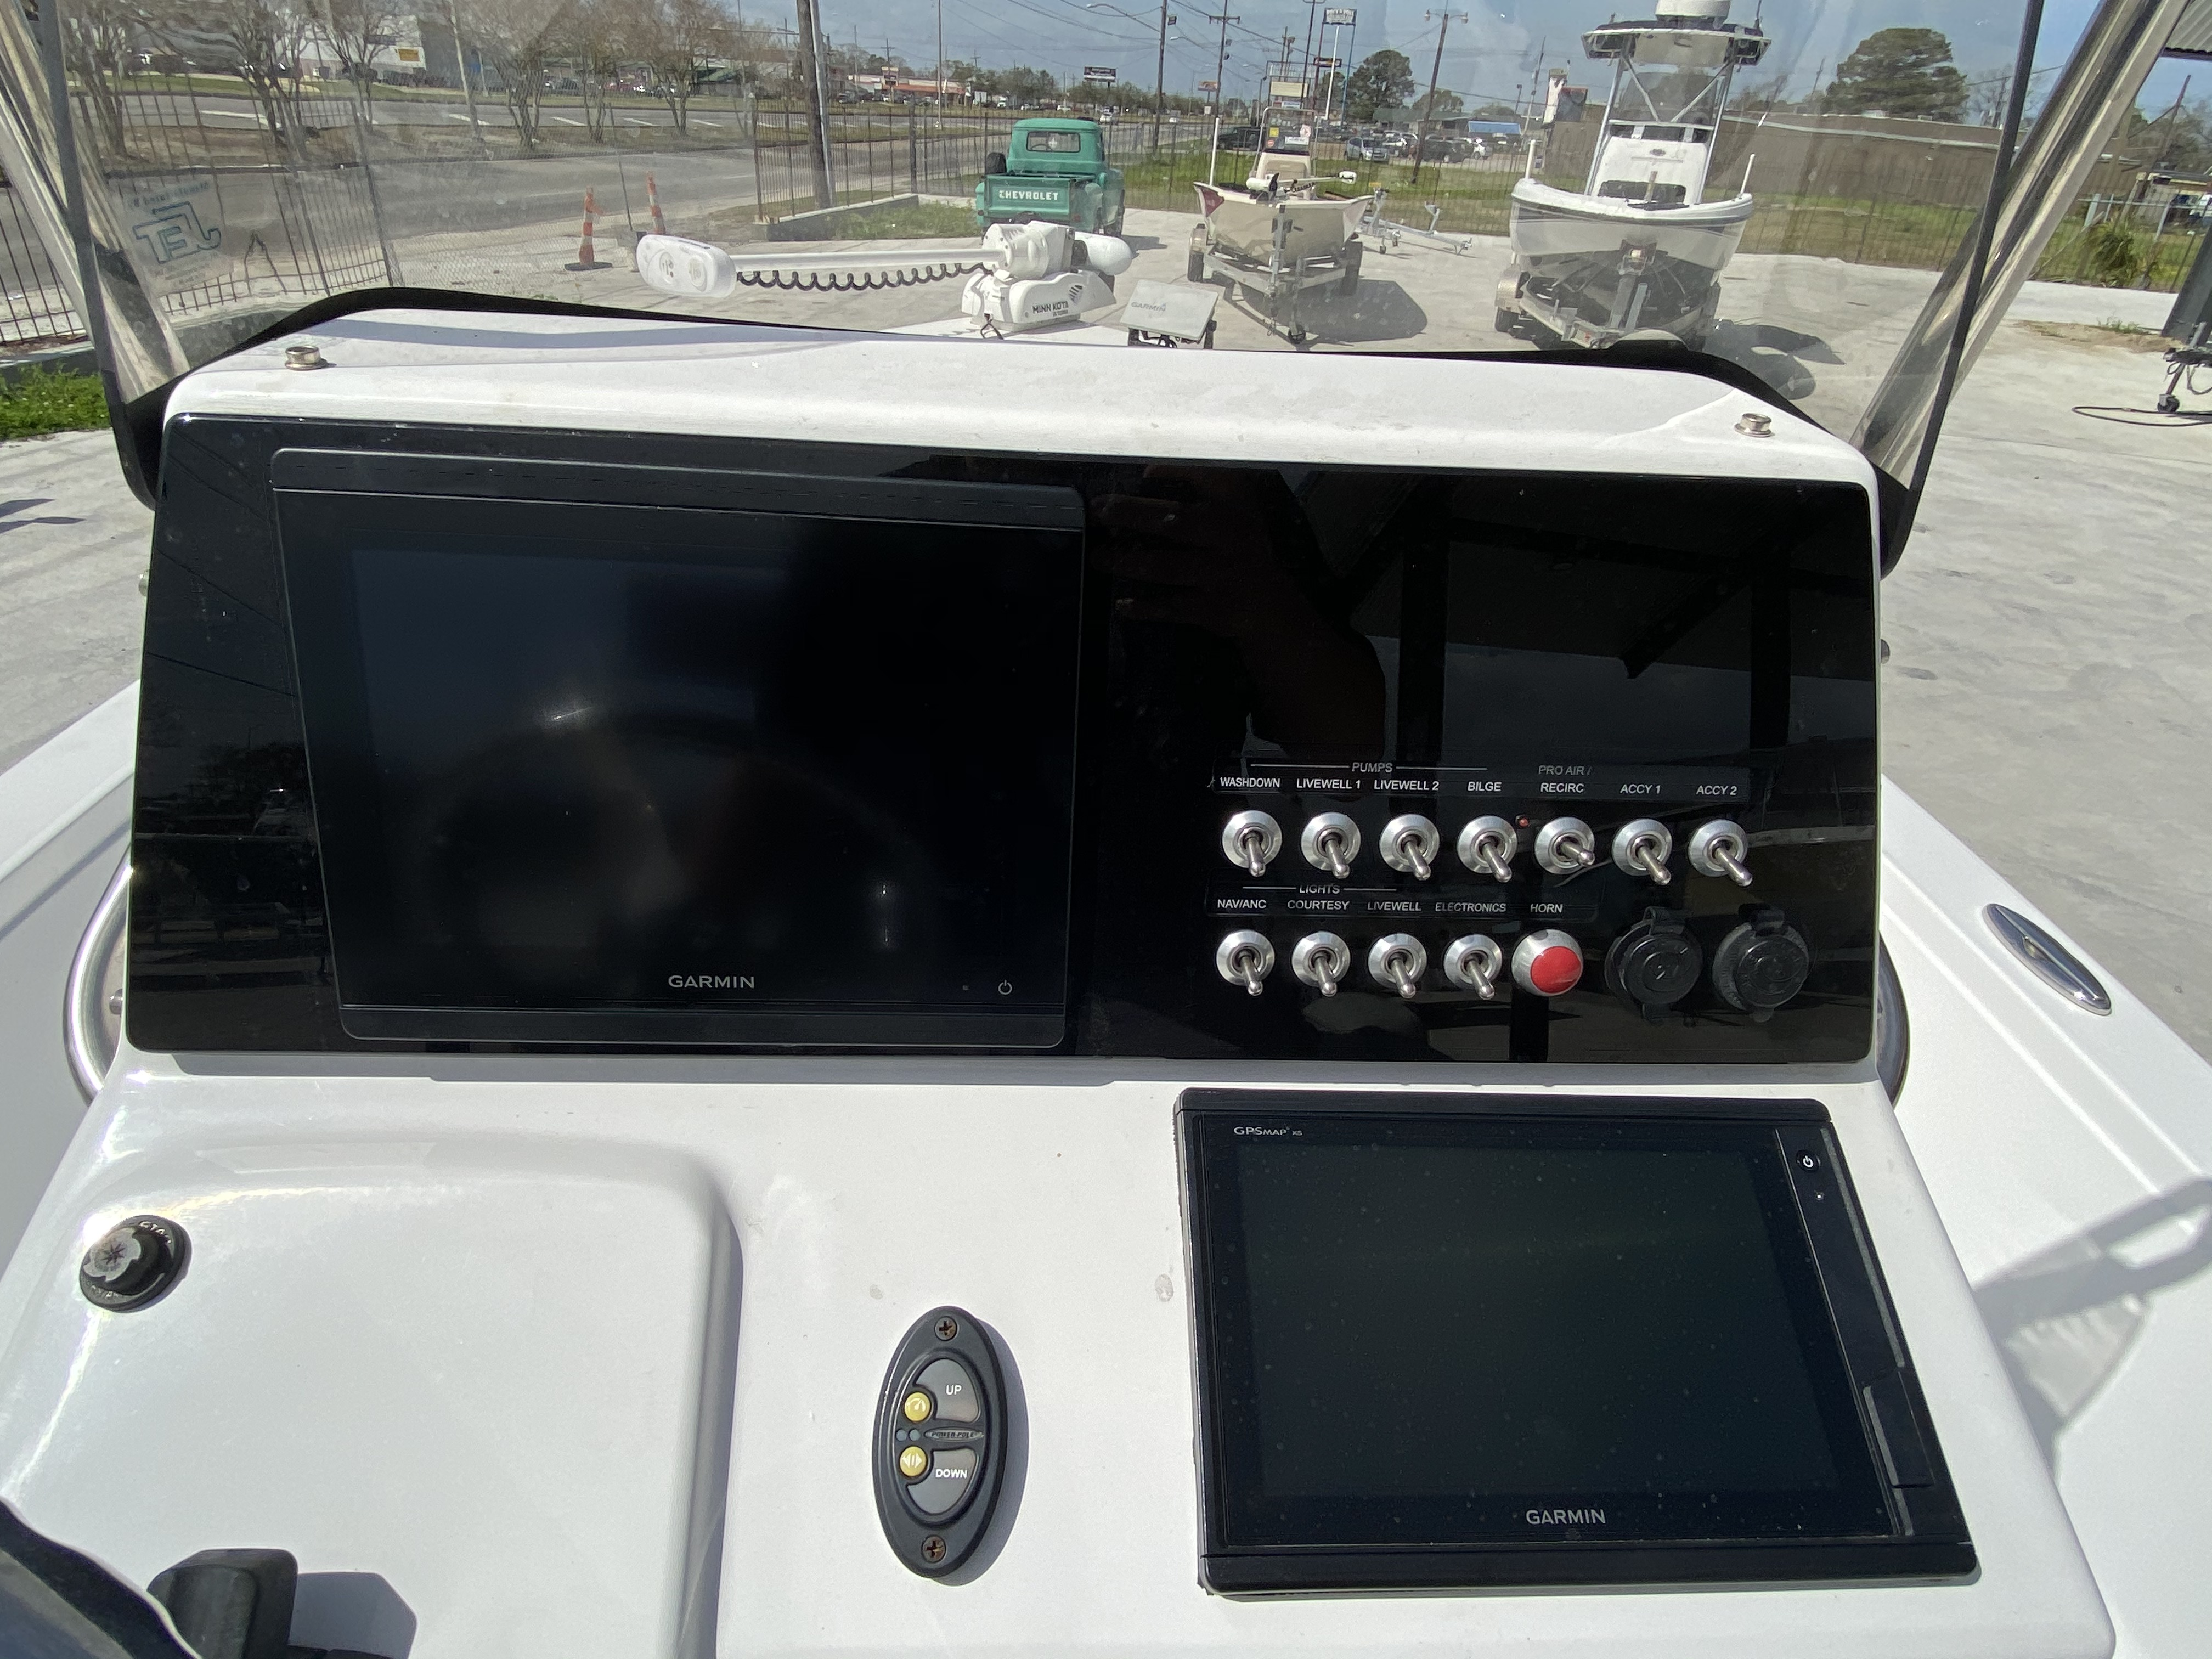 2019 Sportsman Boats boat for sale, model of the boat is 214 Tournament & Image # 13 of 26